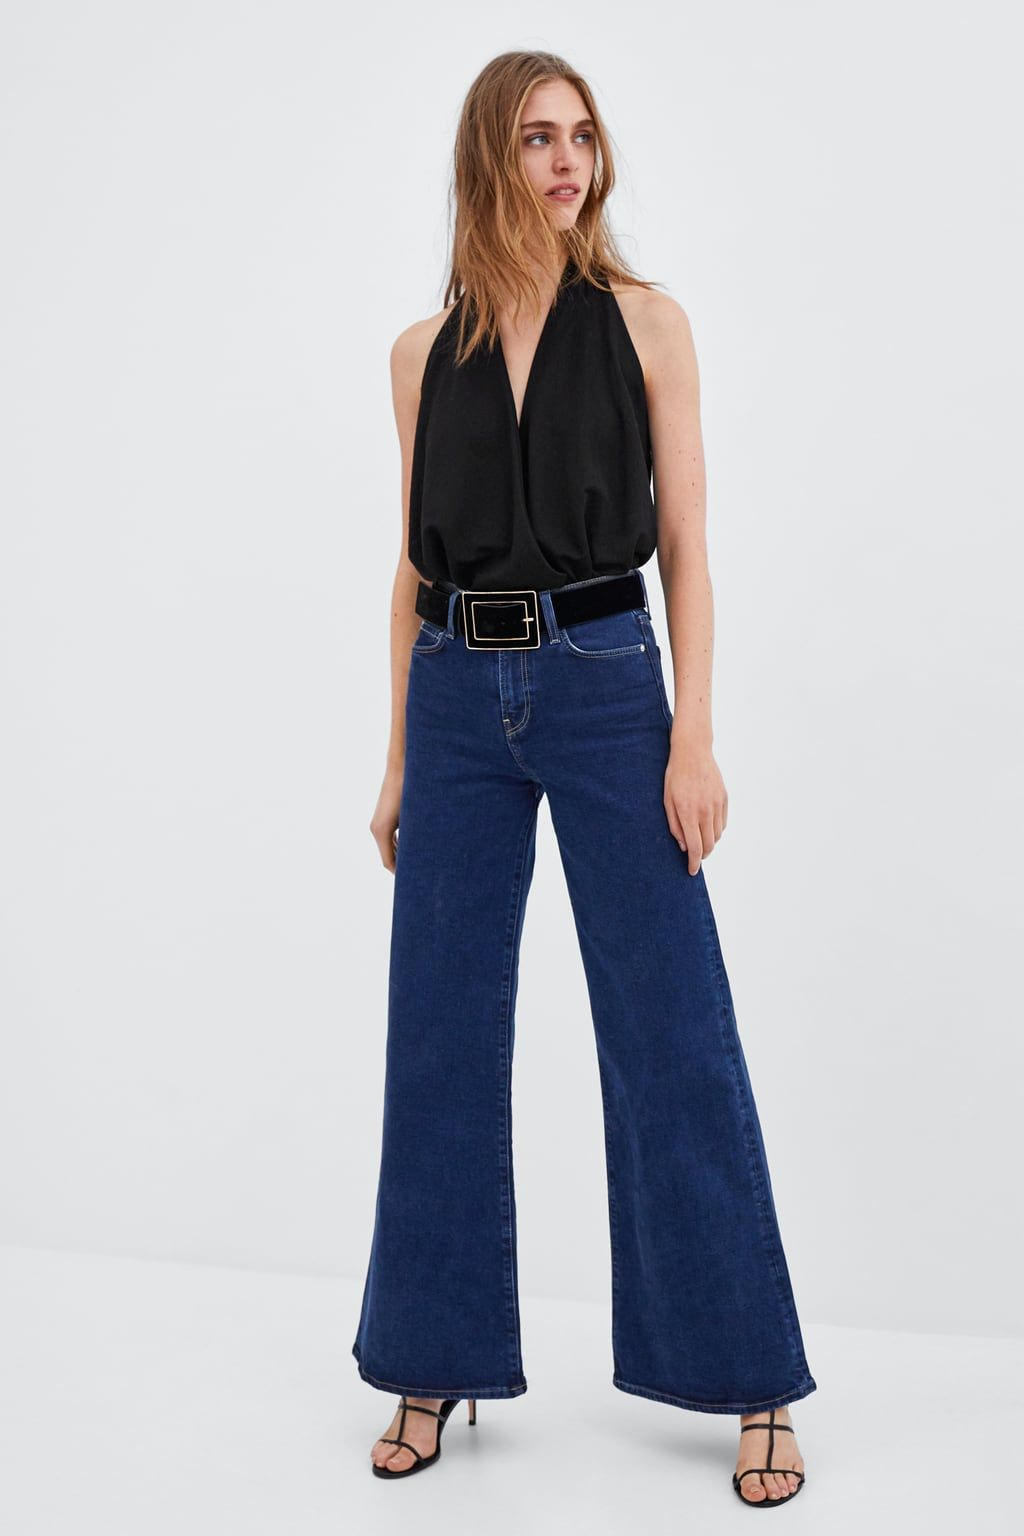 JEANS HI-RISE PALAZZO  Lässiges partyoutfit, Party outfit jeans